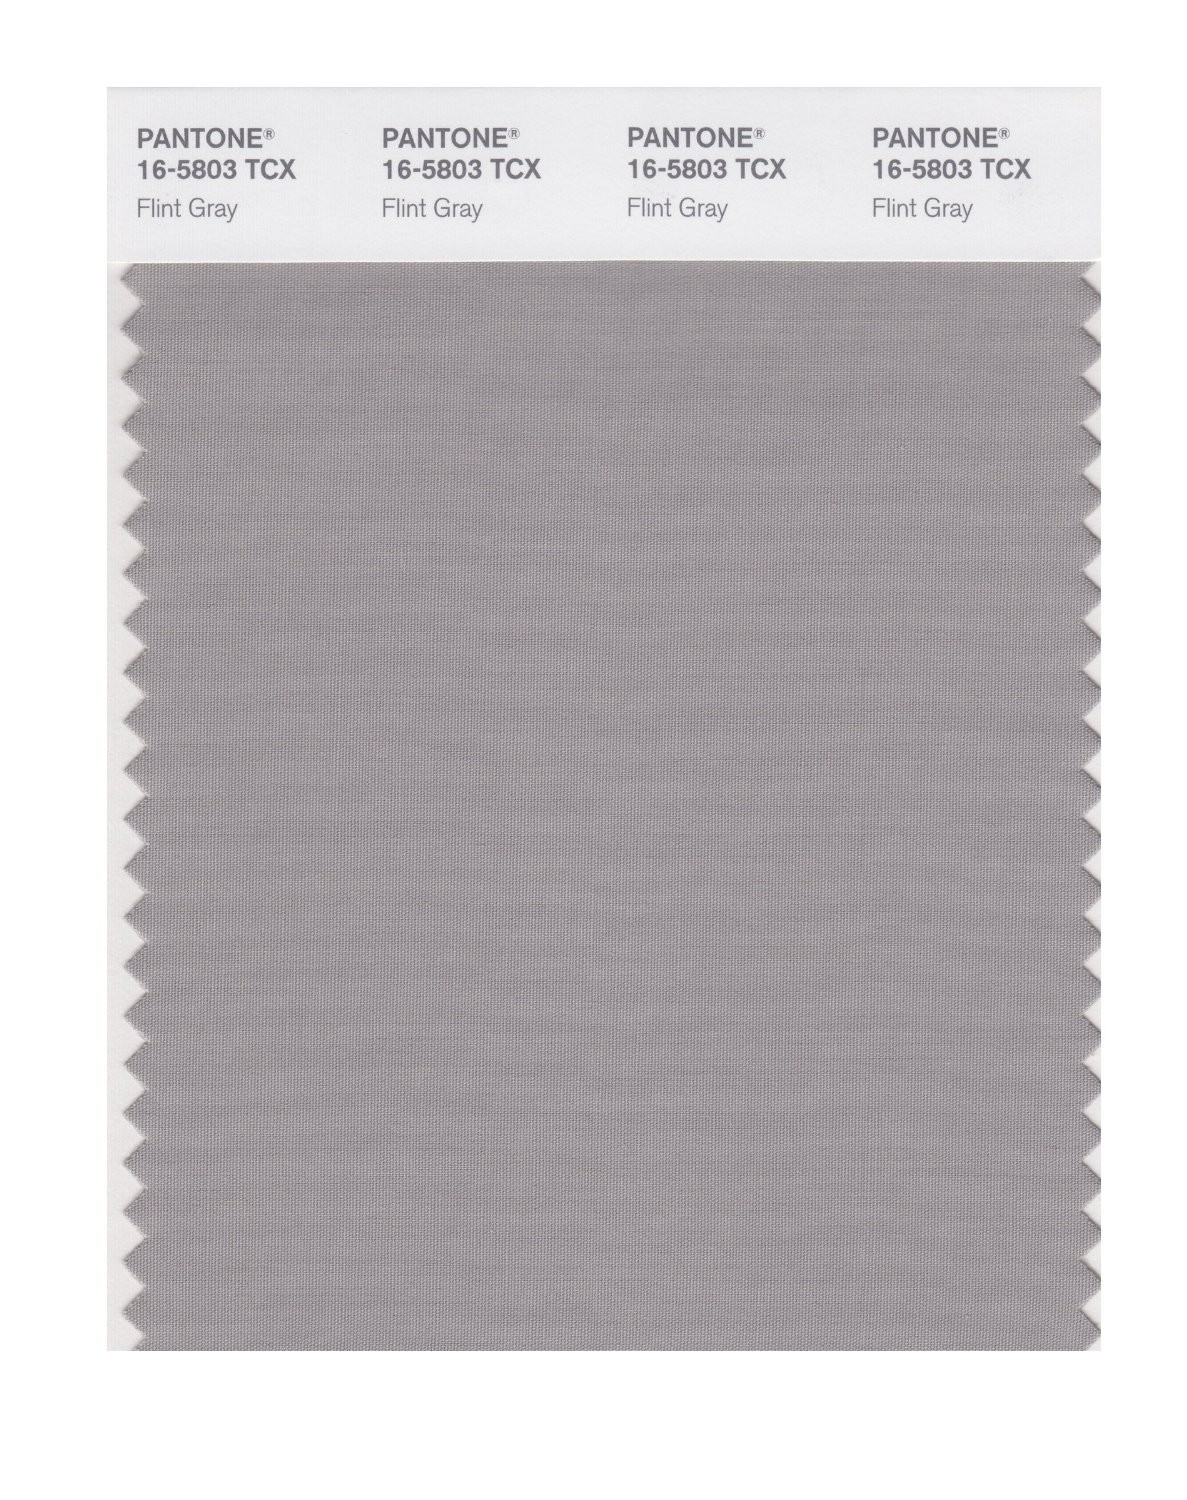 Pantone 16-5803 TCX Swatch Card Flint Gray